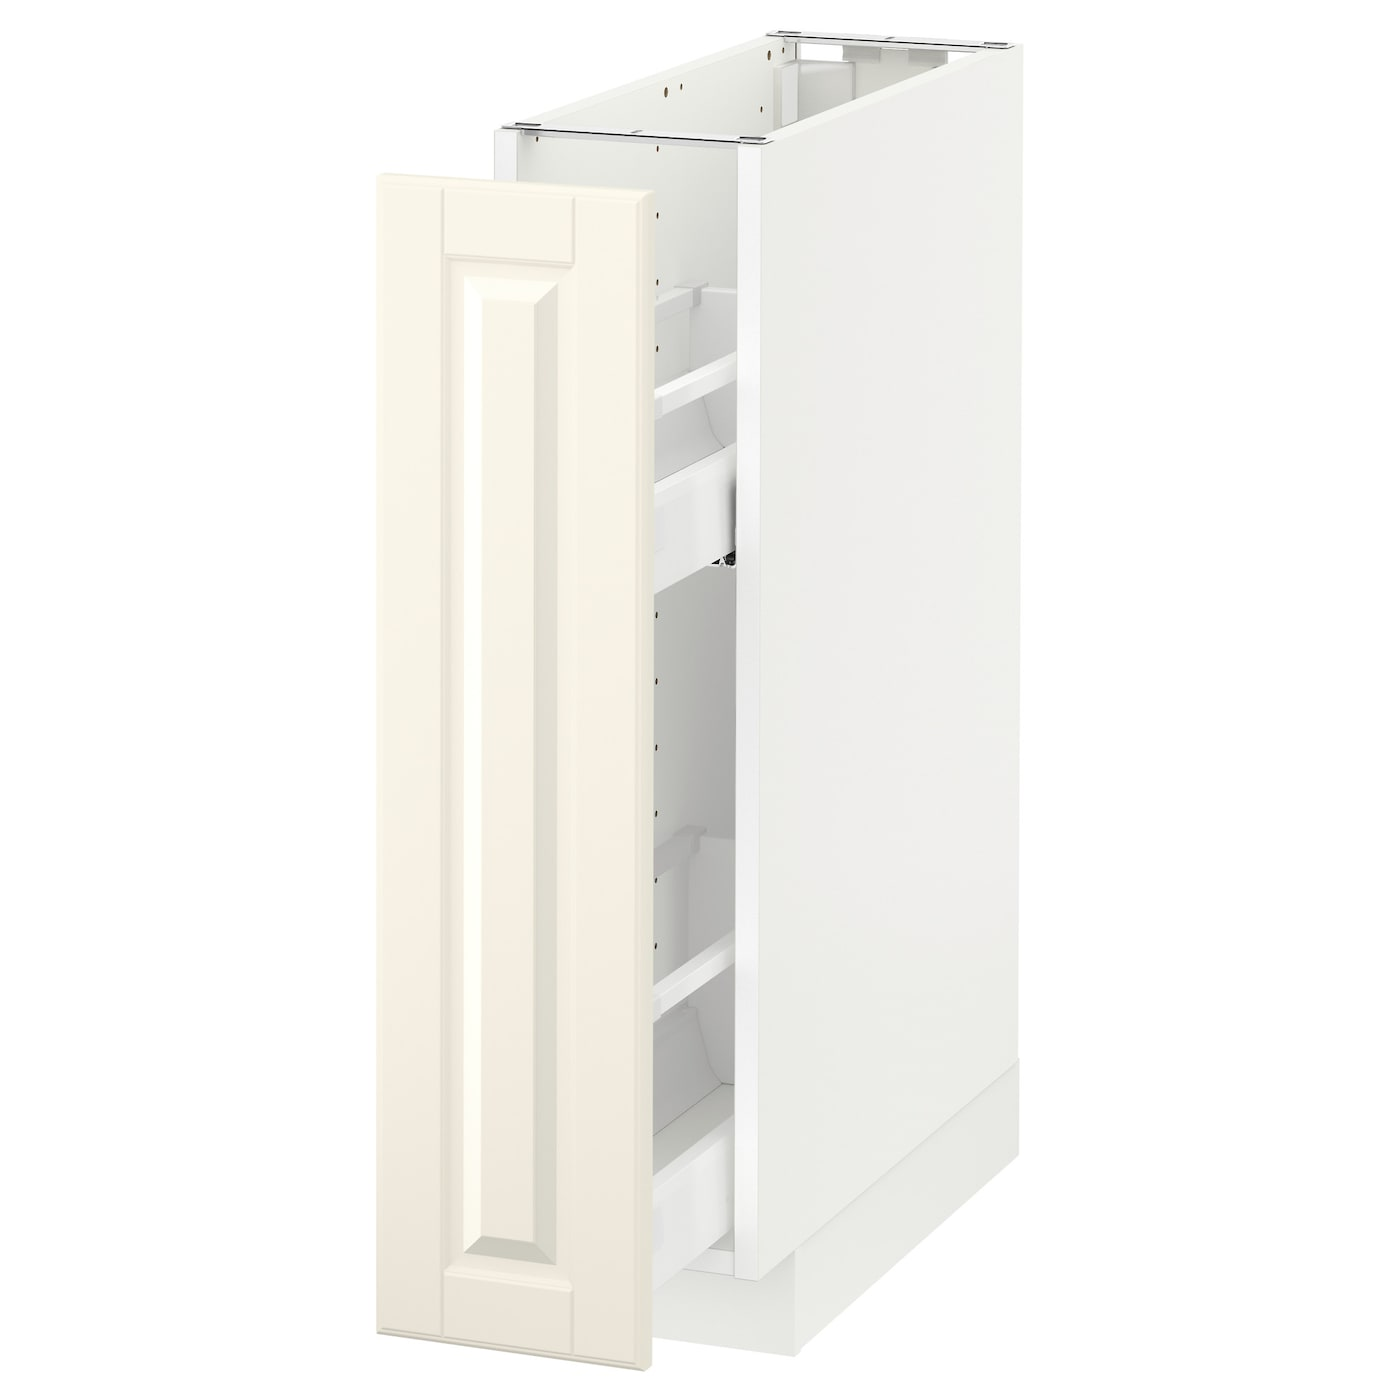 metod base cabinet pull out int fittings white bodbyn off white 20 x rh ikea com IKEA Storage Drawers IKEA Kitchen Pull Out Shelves